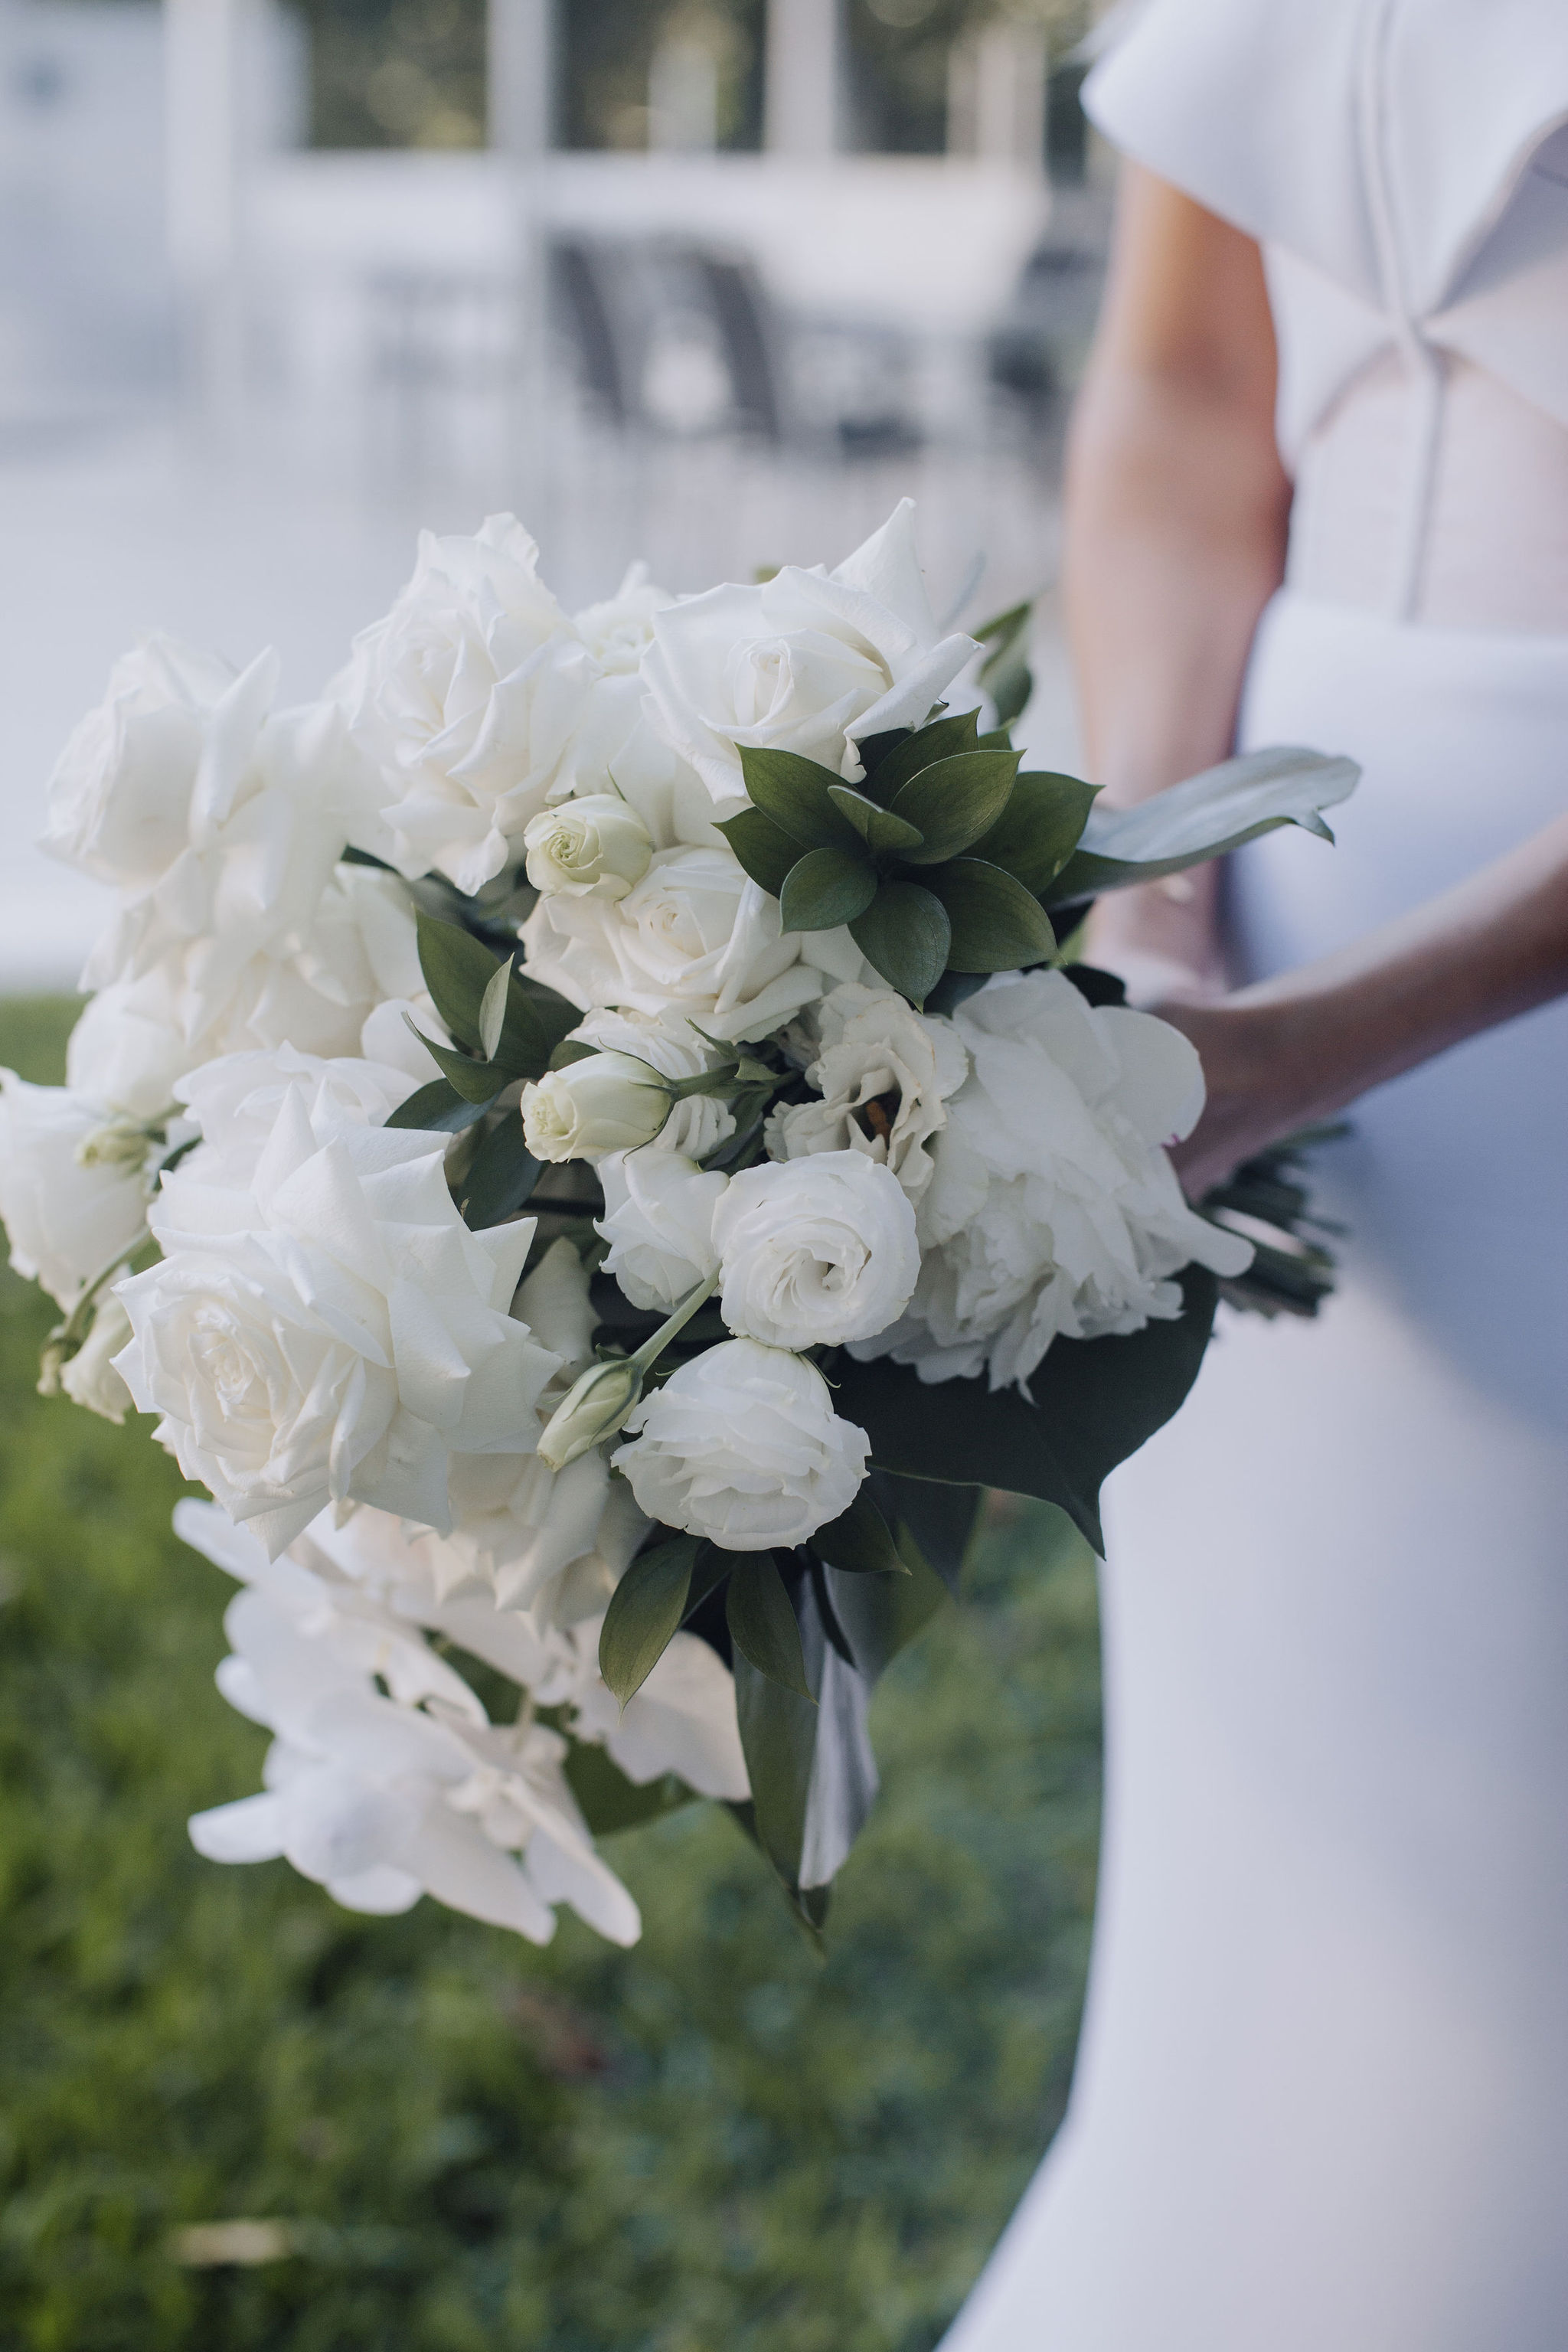 White wedding bouquet featuring orchids and tropical leaves